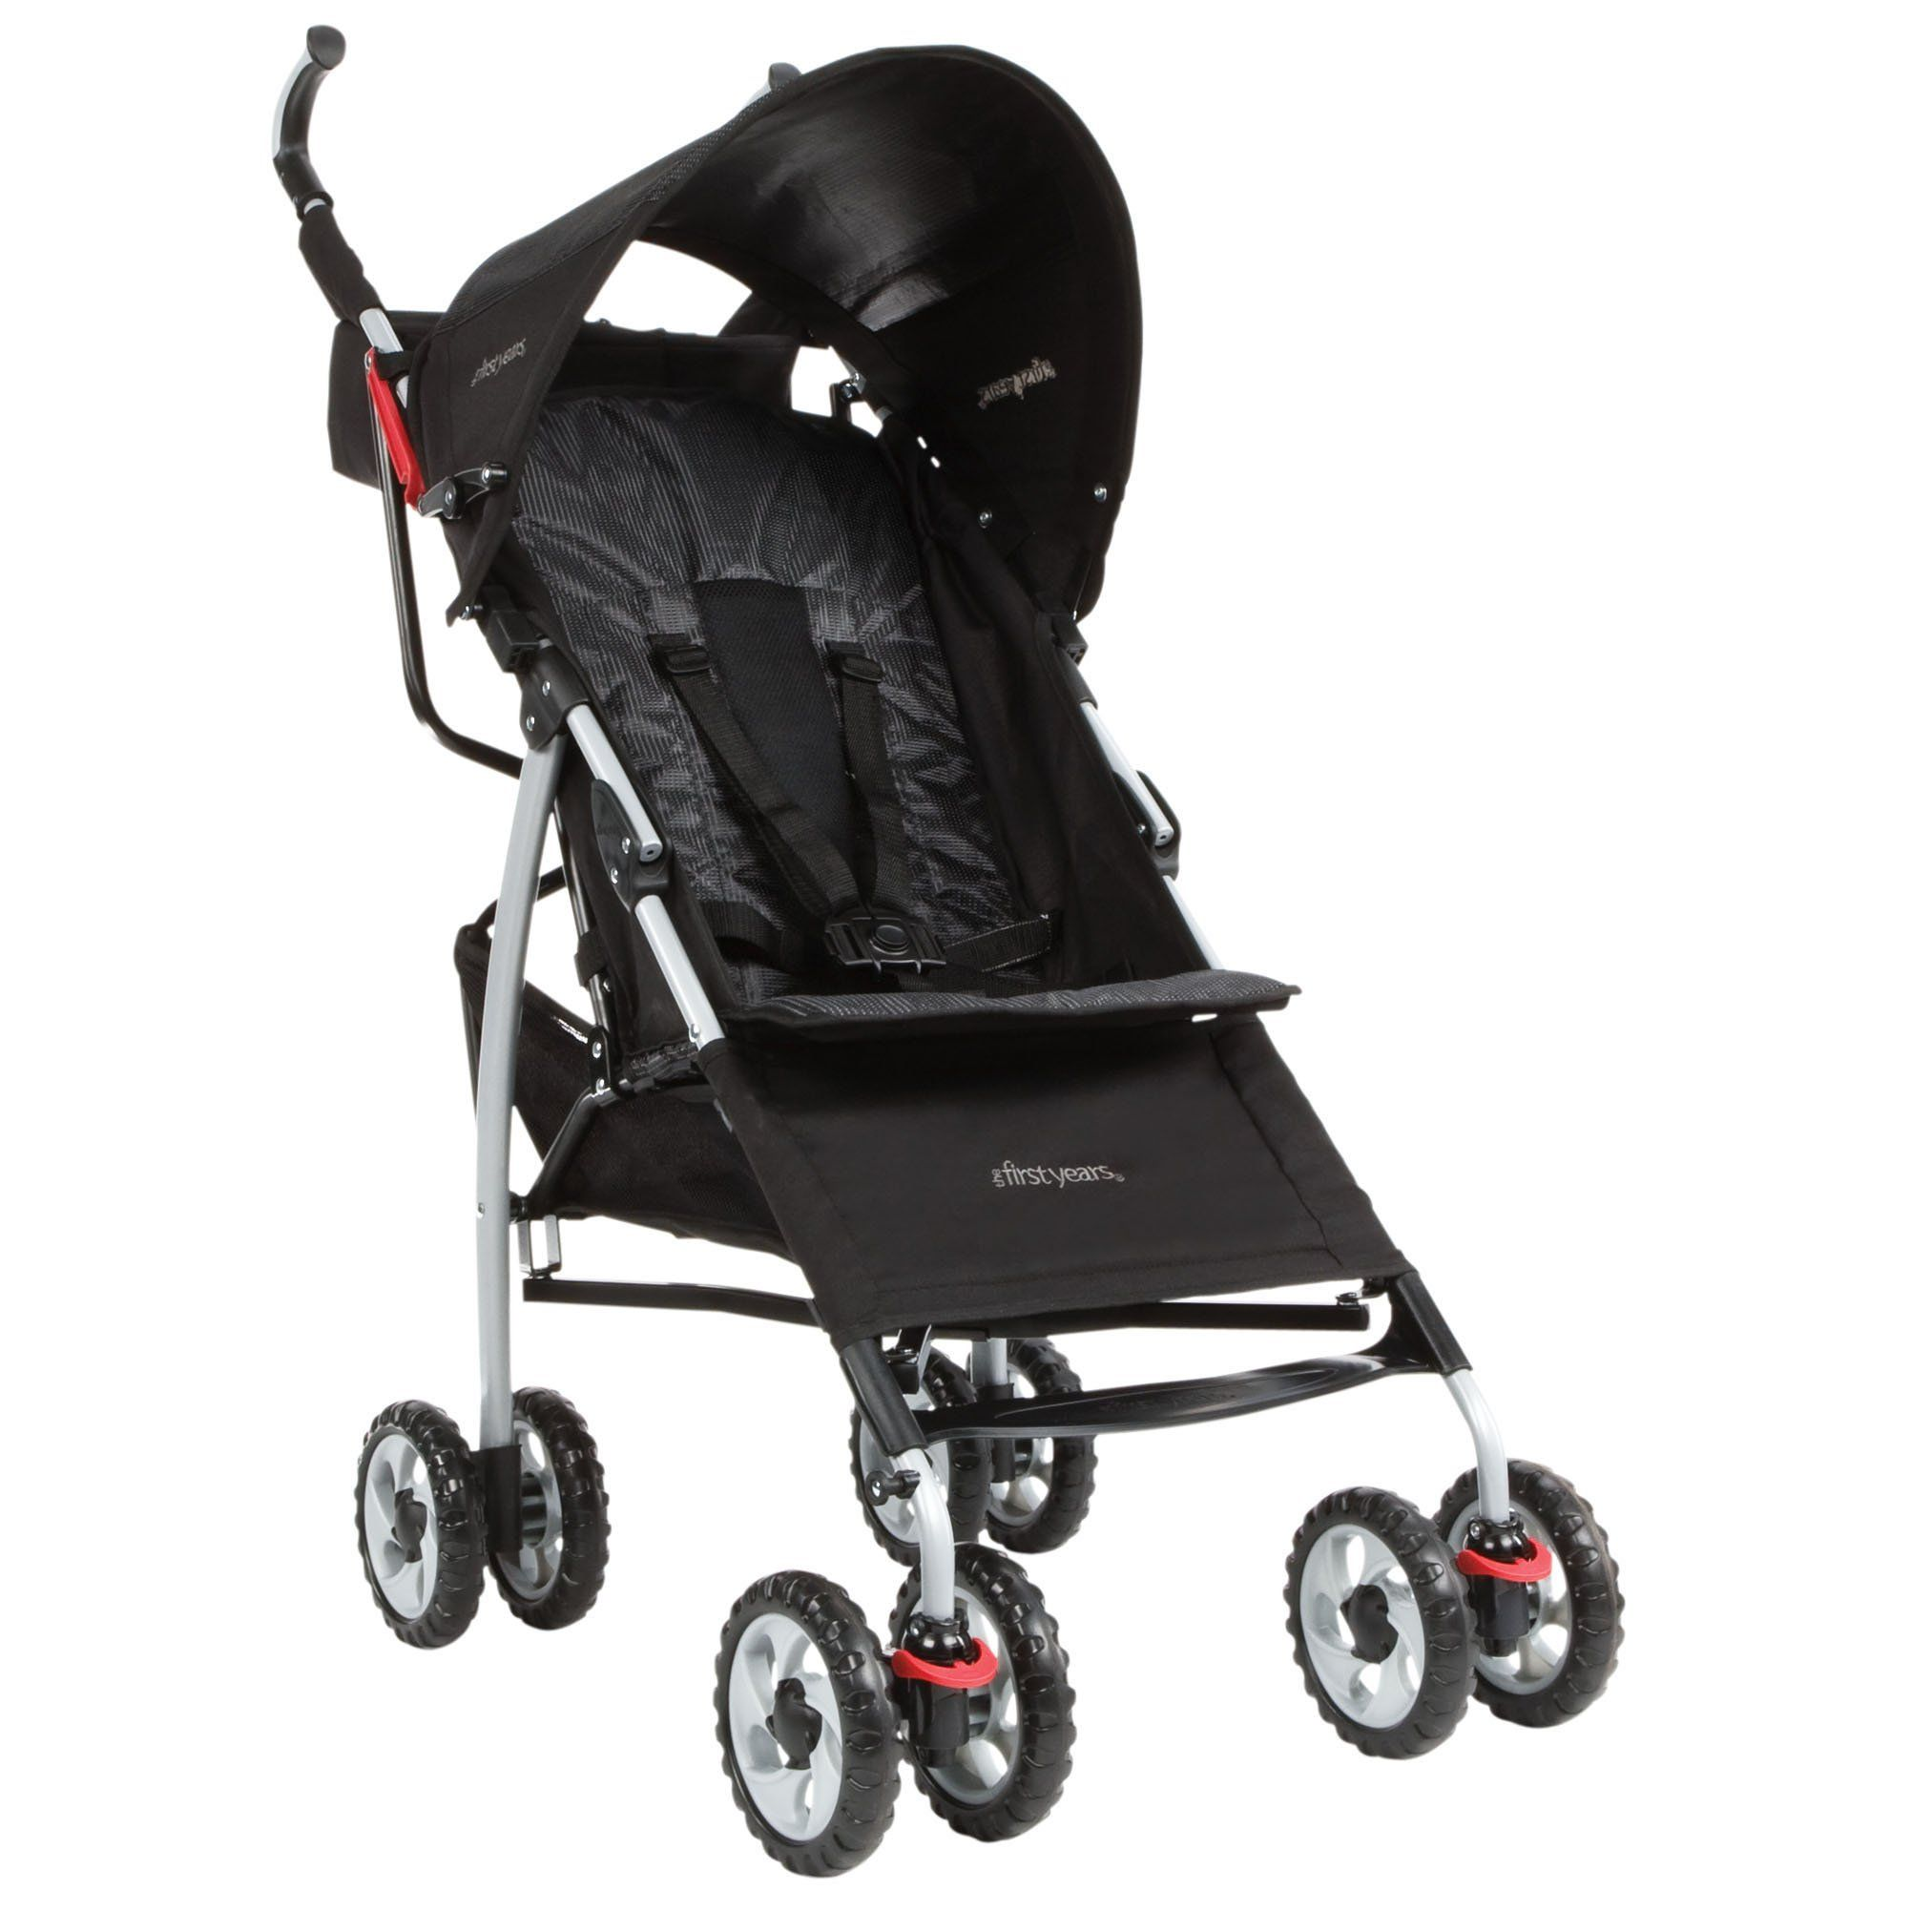 Umbrella Stroller First Years The First Years Ignite Stroller 70 Great Reviews Tall